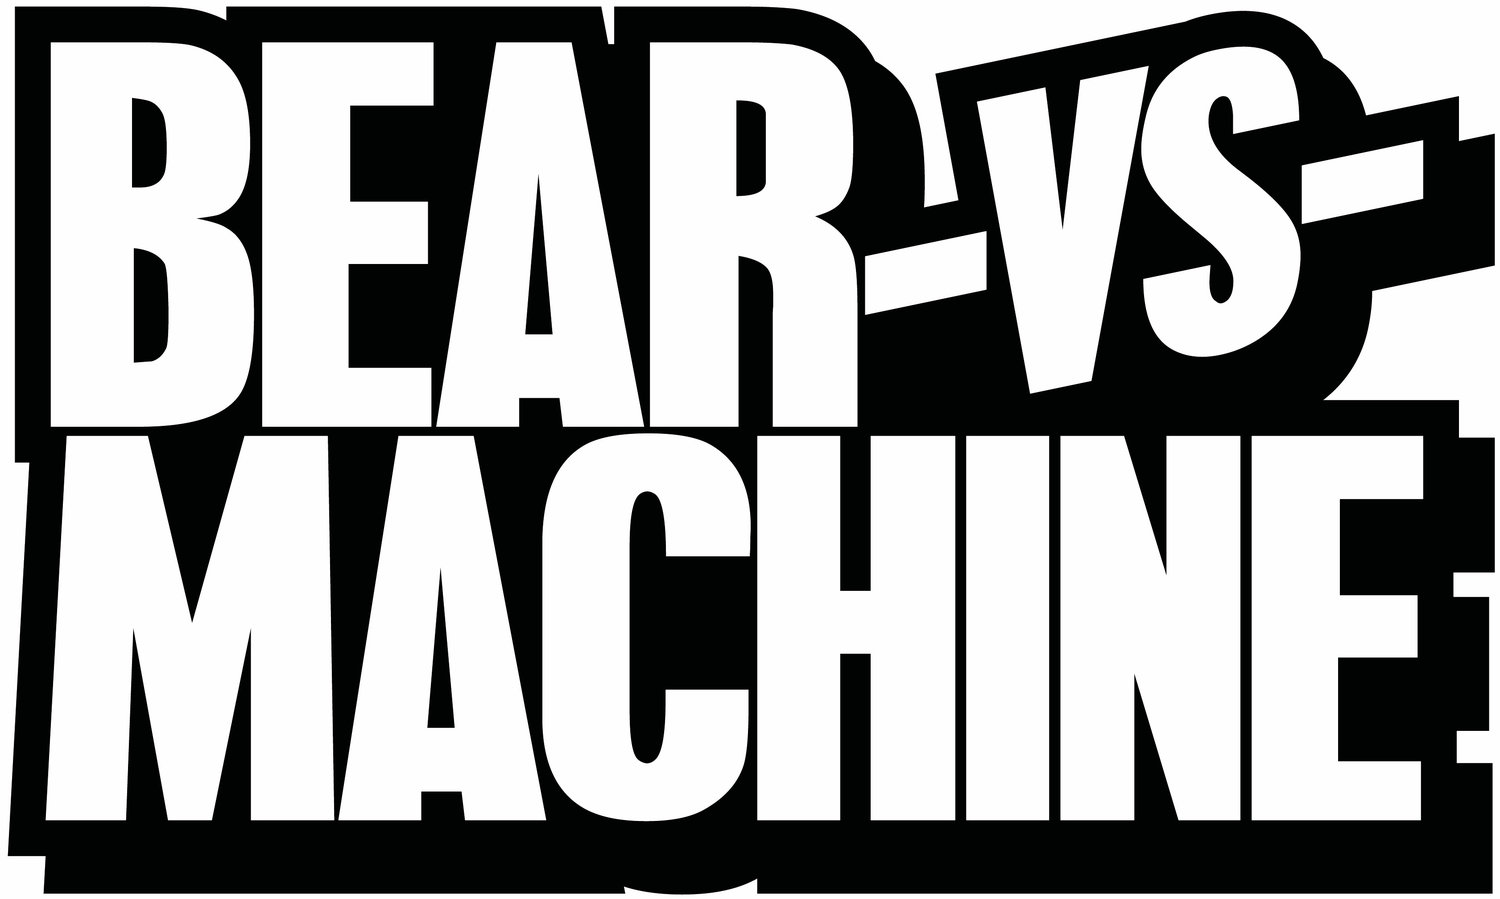 Bear vs Machine